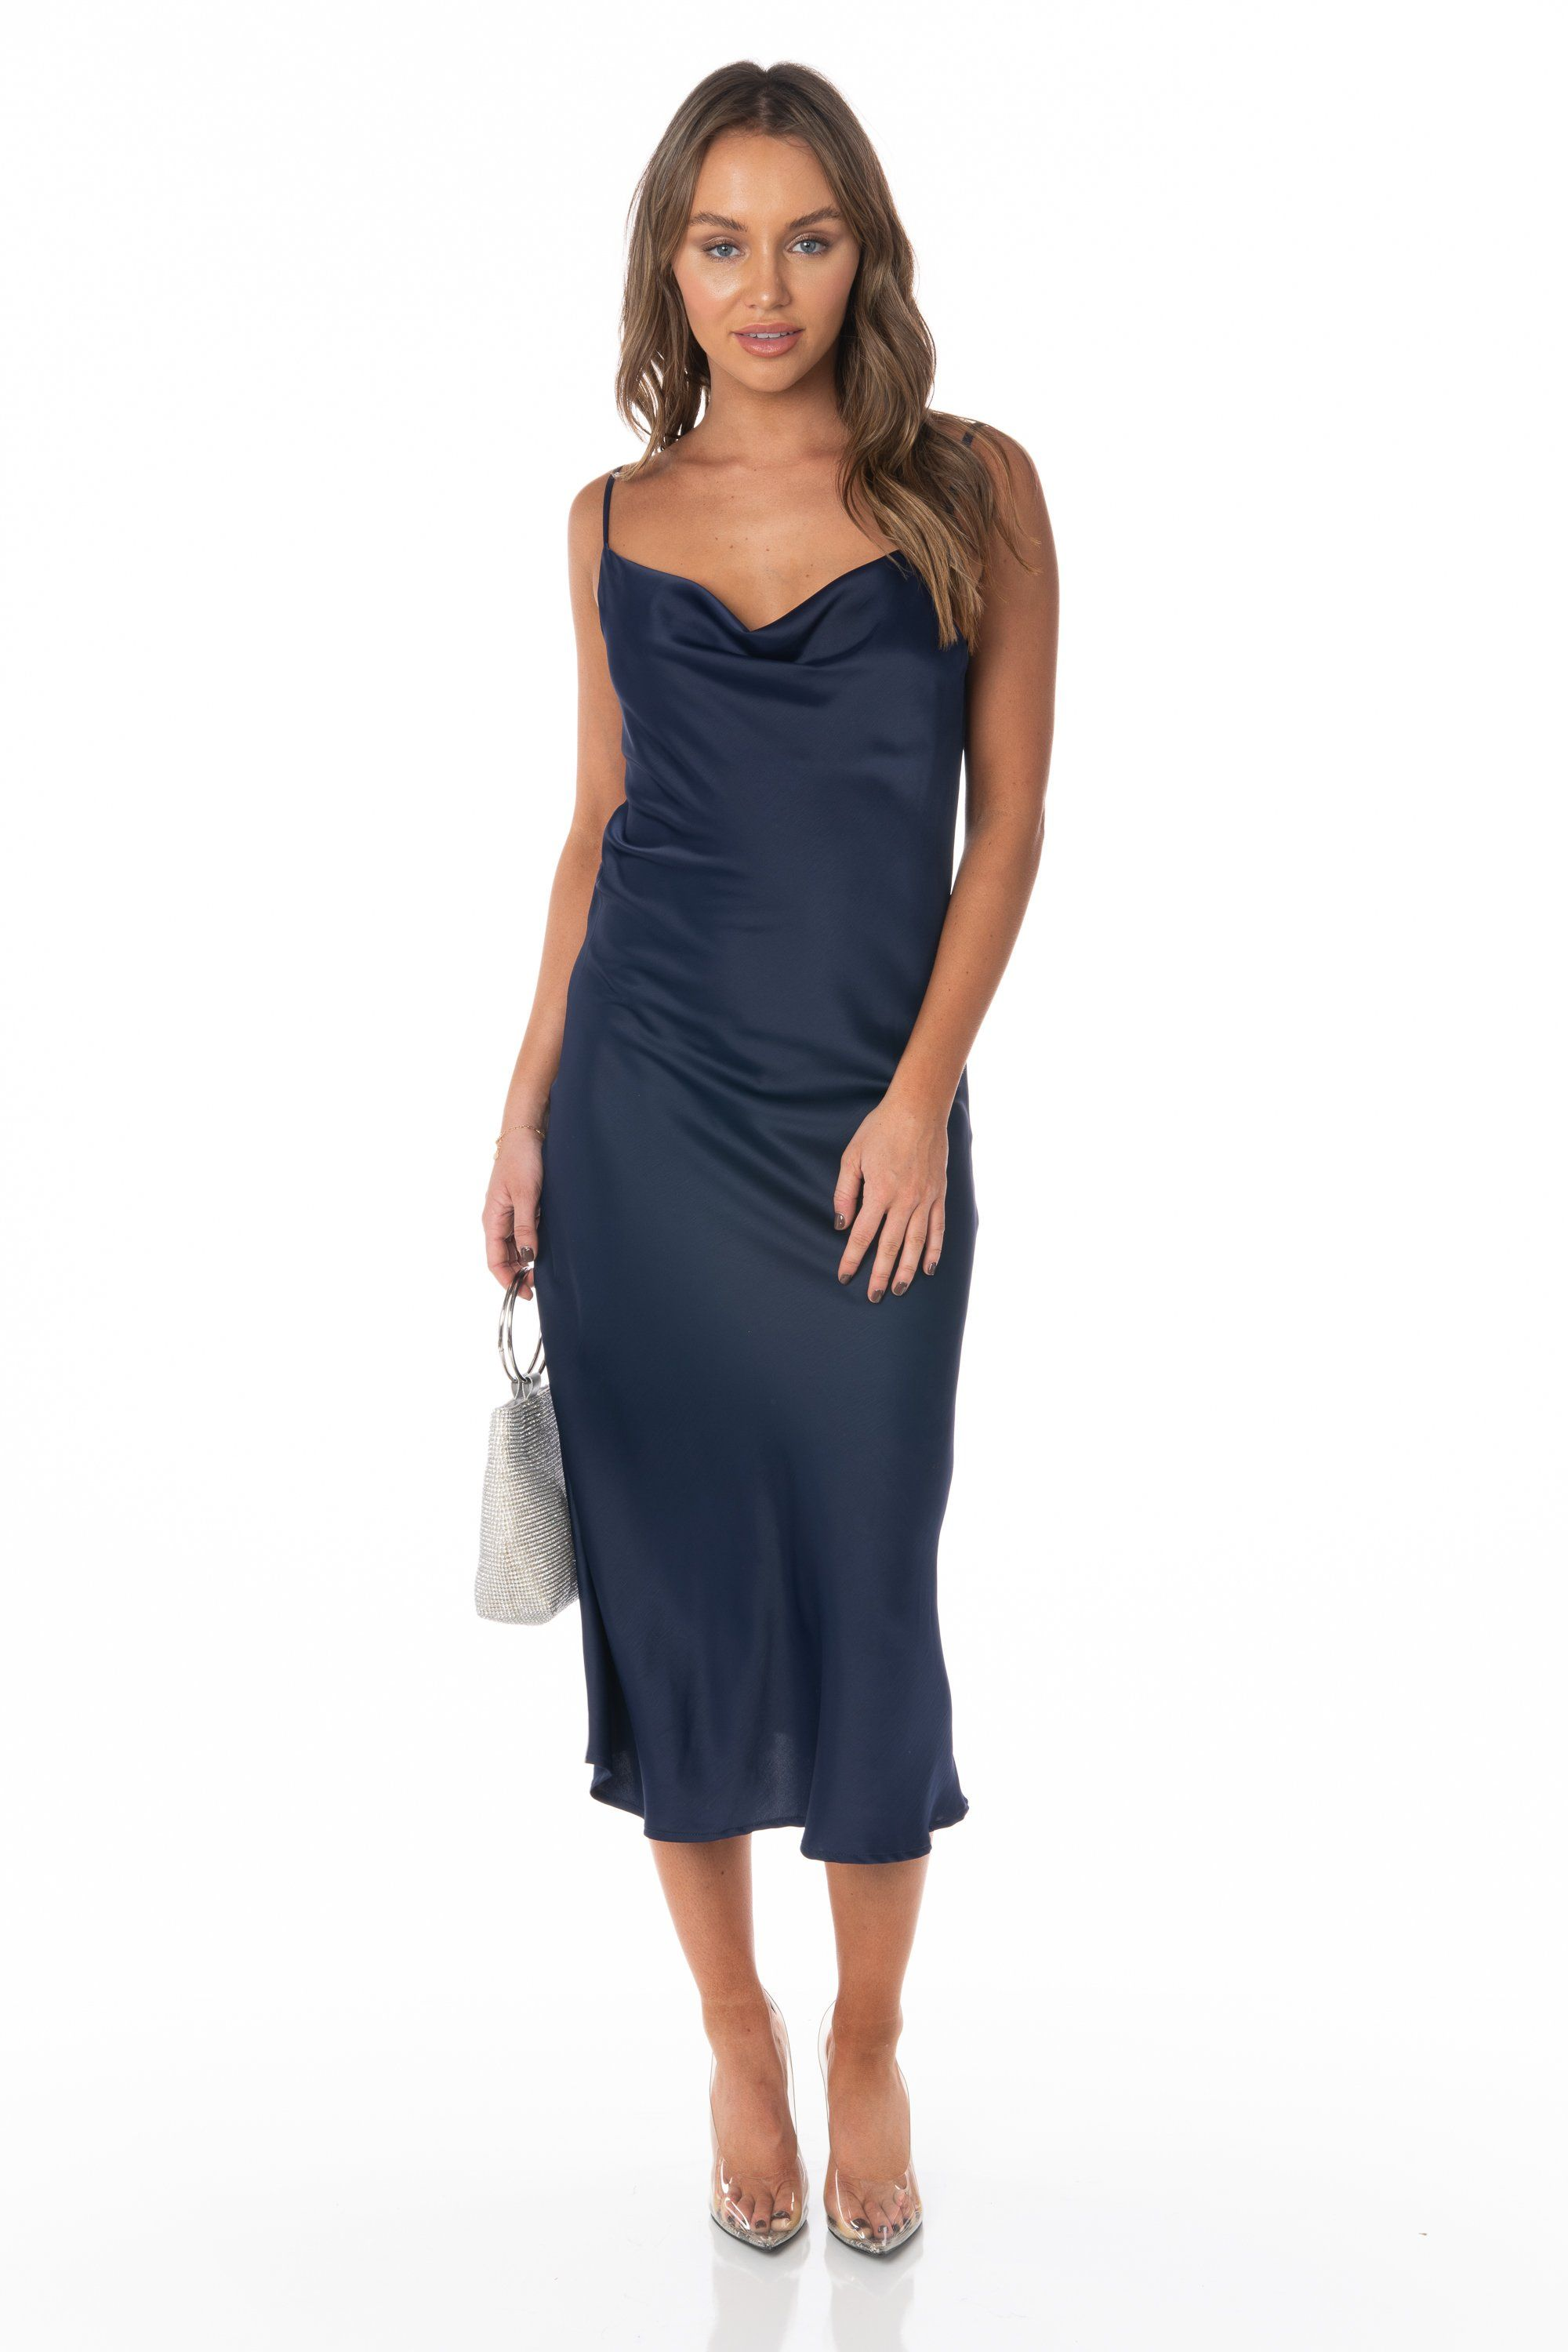 Navy Satin Midi Slip Dress Dresses HYPEACH BOUTIQUE